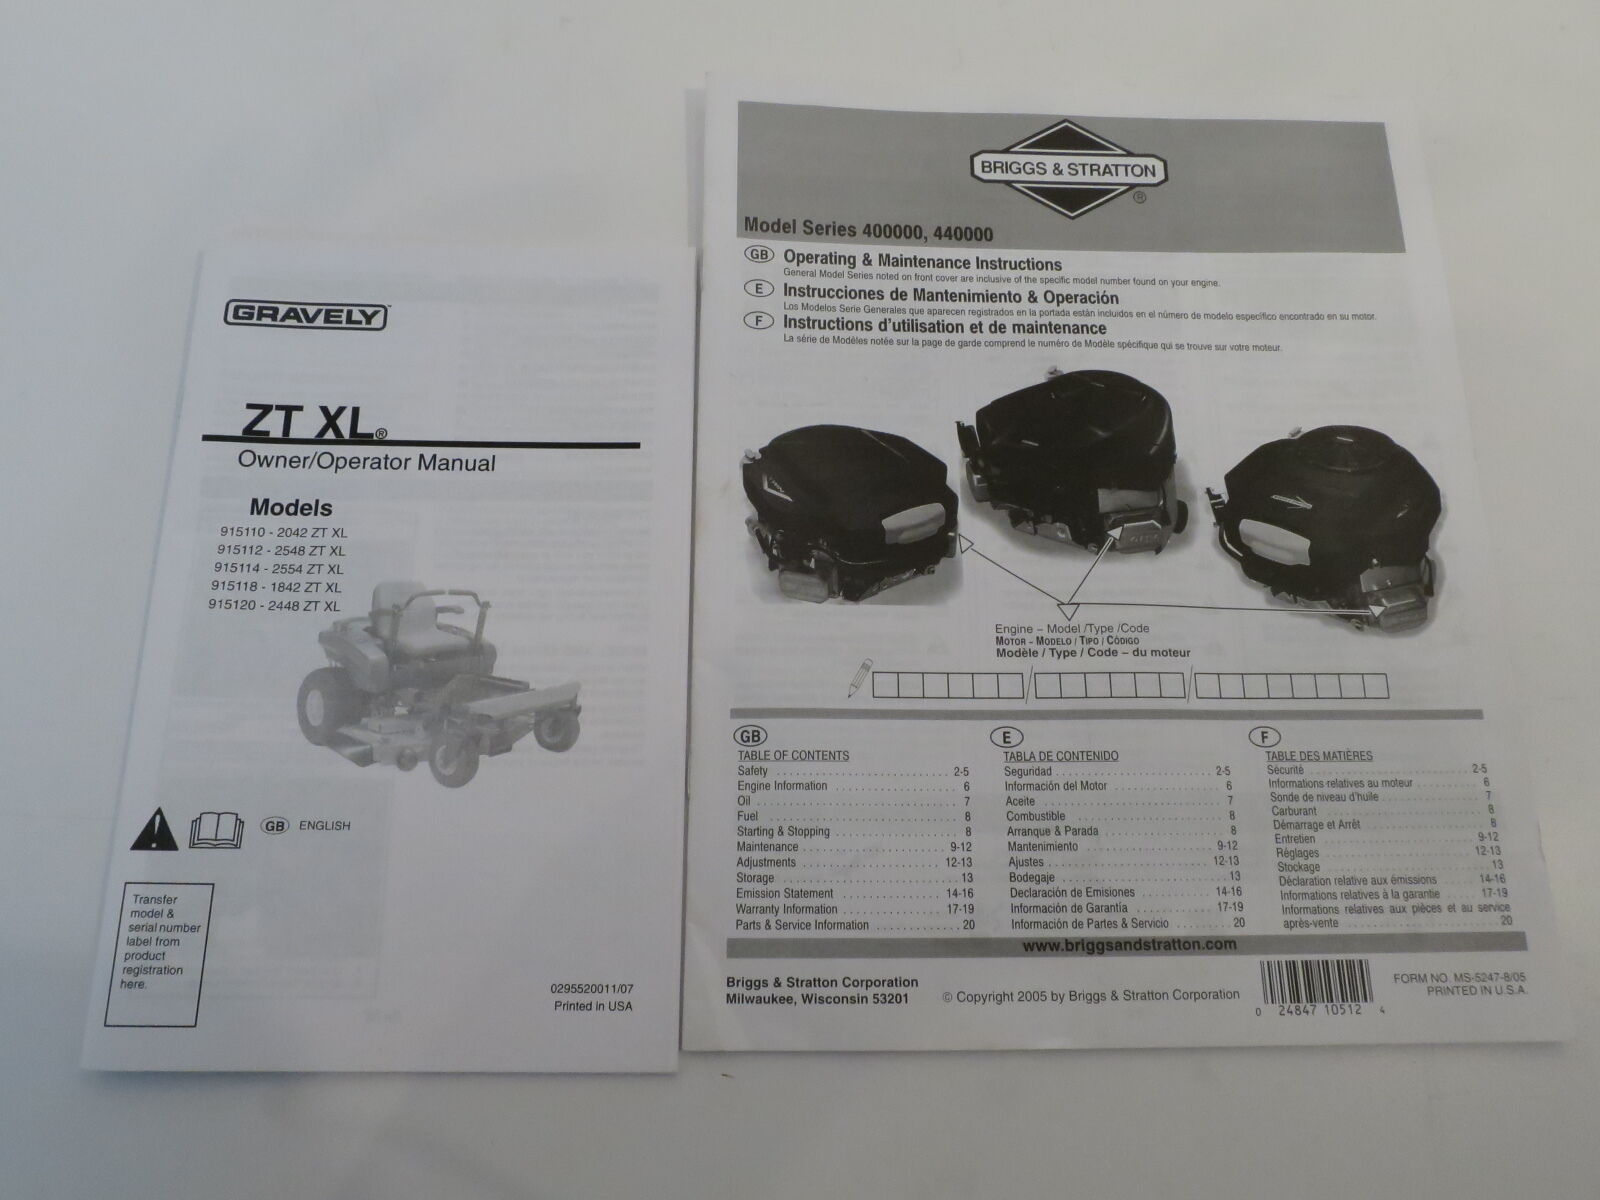 Gravely ZT XL / Briggs & Stratton OPERATOR OWNERS MANUAL for Lawn Mower  Tractor